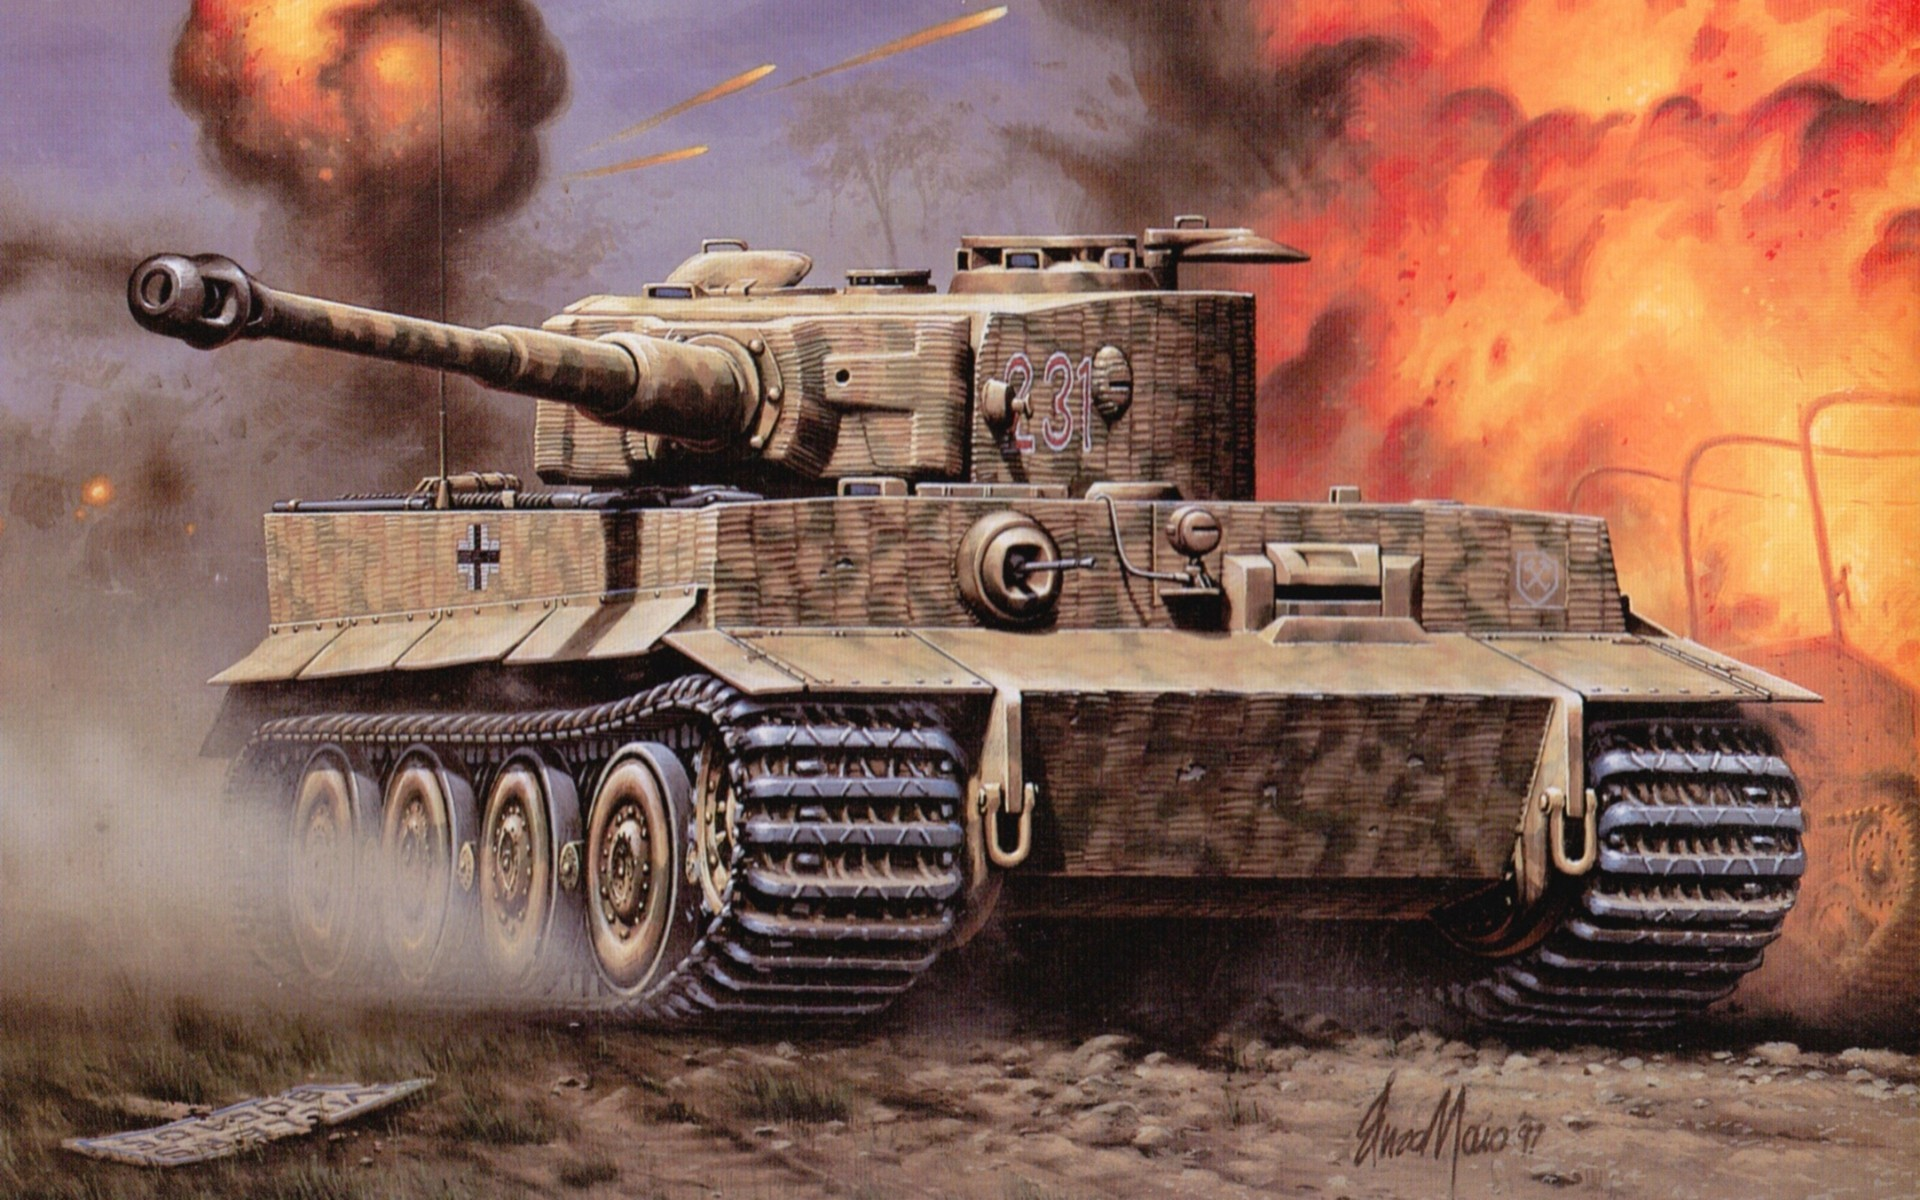 Tank tiger fire war battle vehicles wallpaper   ForWallpapercom 1920x1200